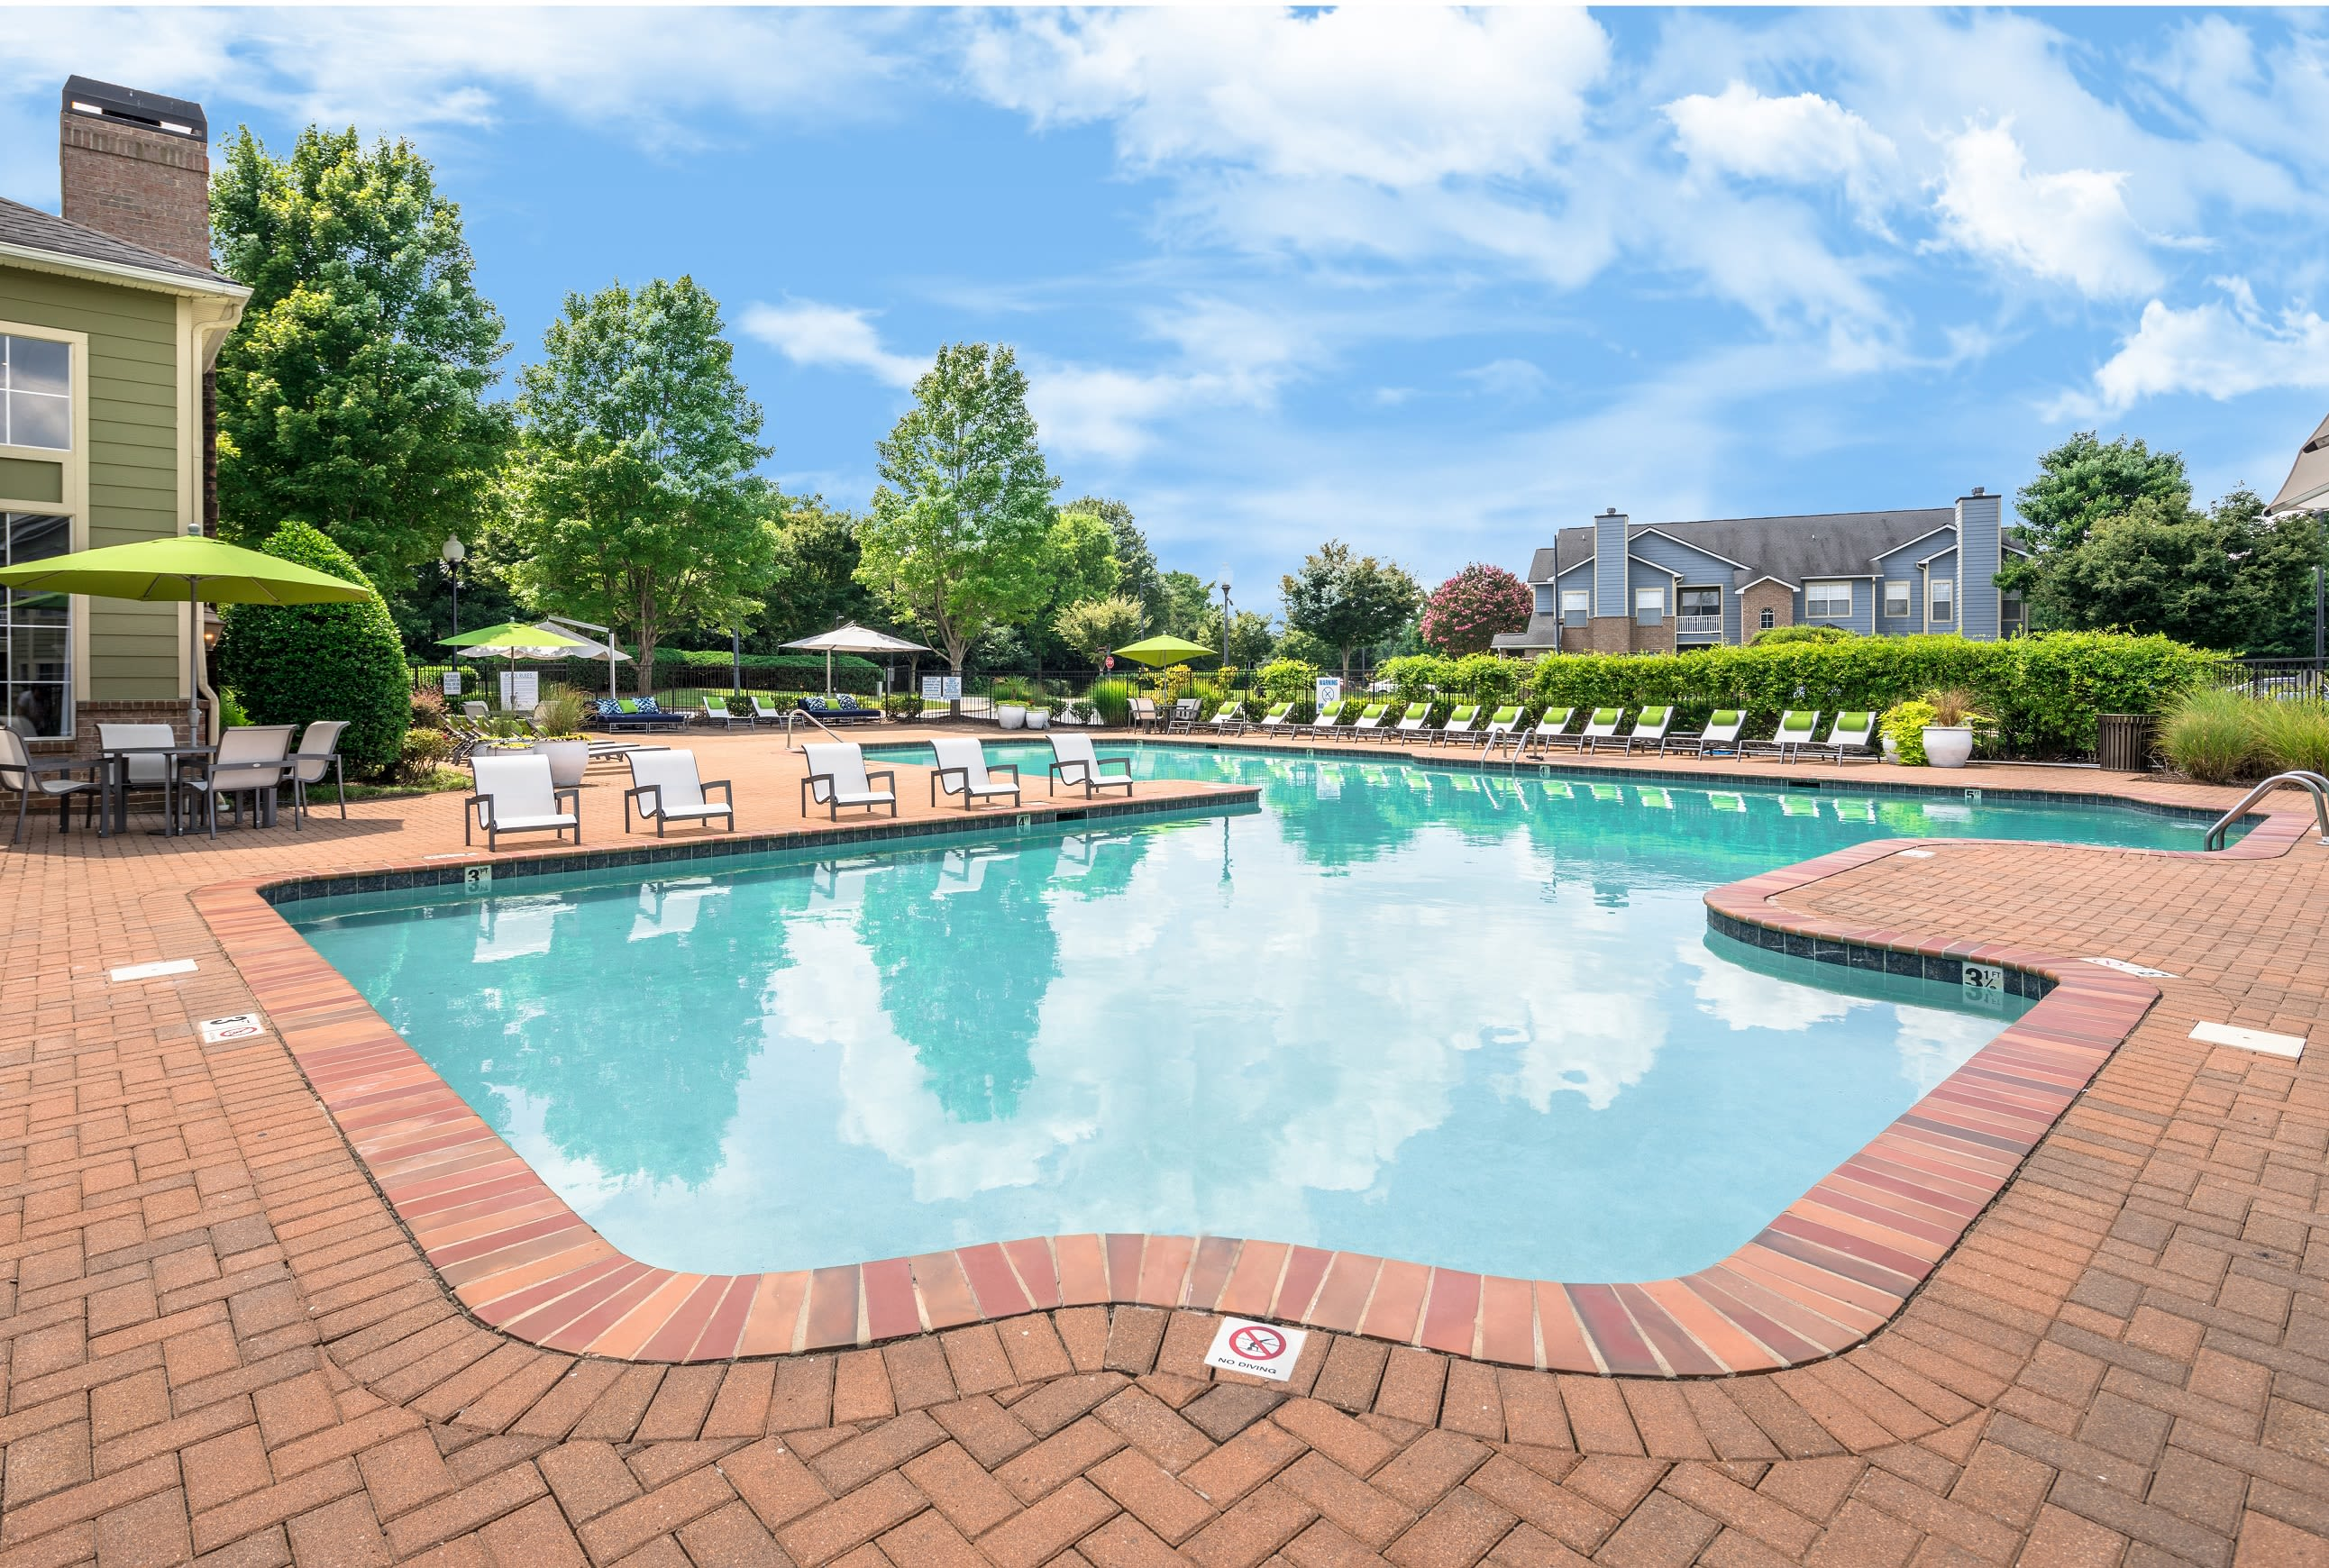 Resident pool at Highlands at Alexander Pointe in Charlotte, North Carolina